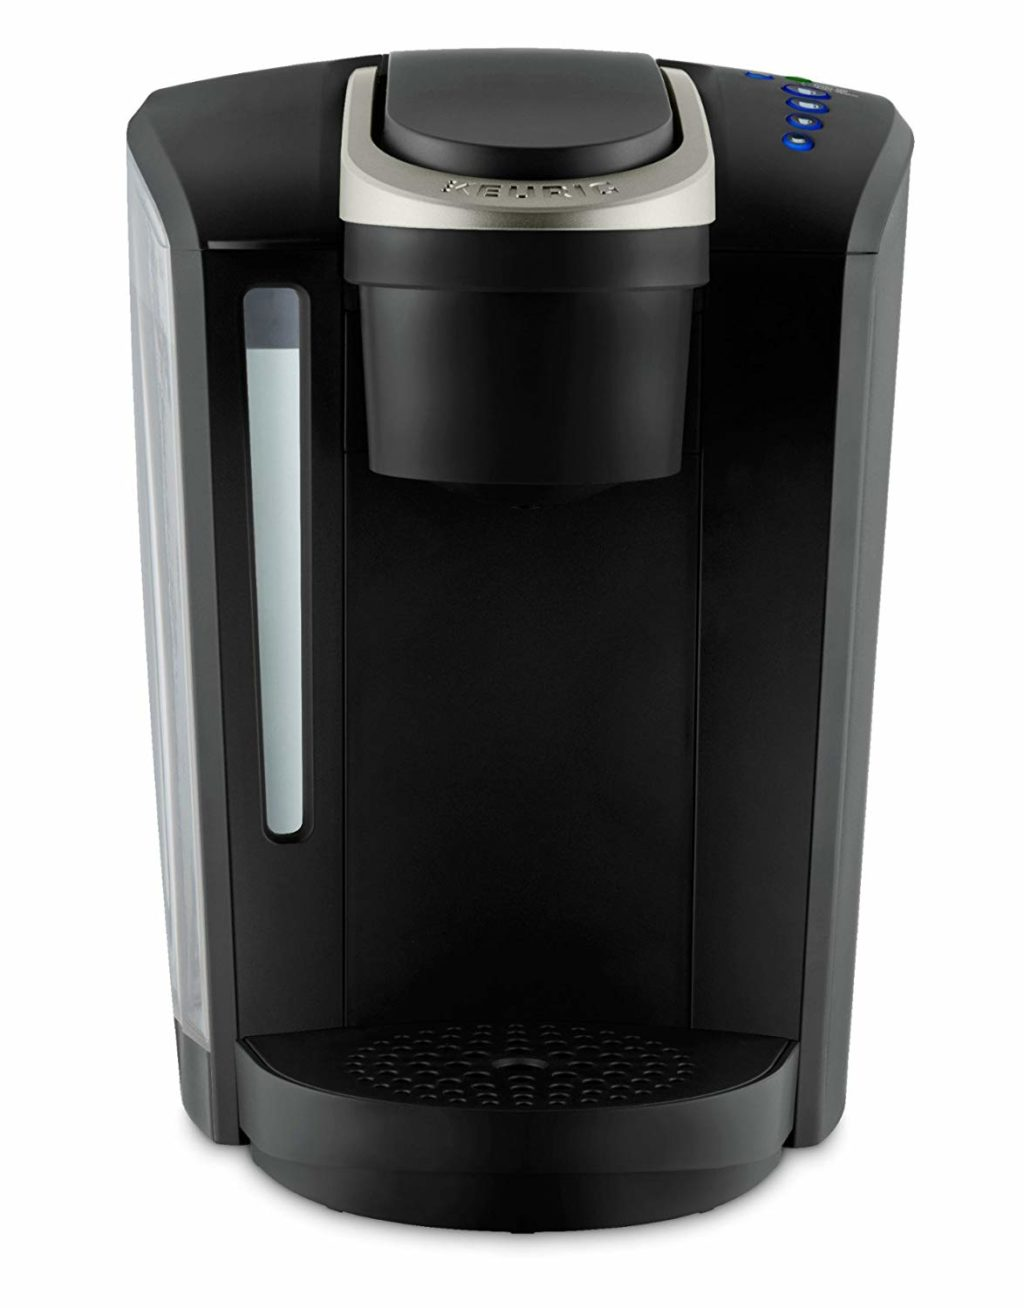 The Keurig K-Select Coffee Maker in matte black.